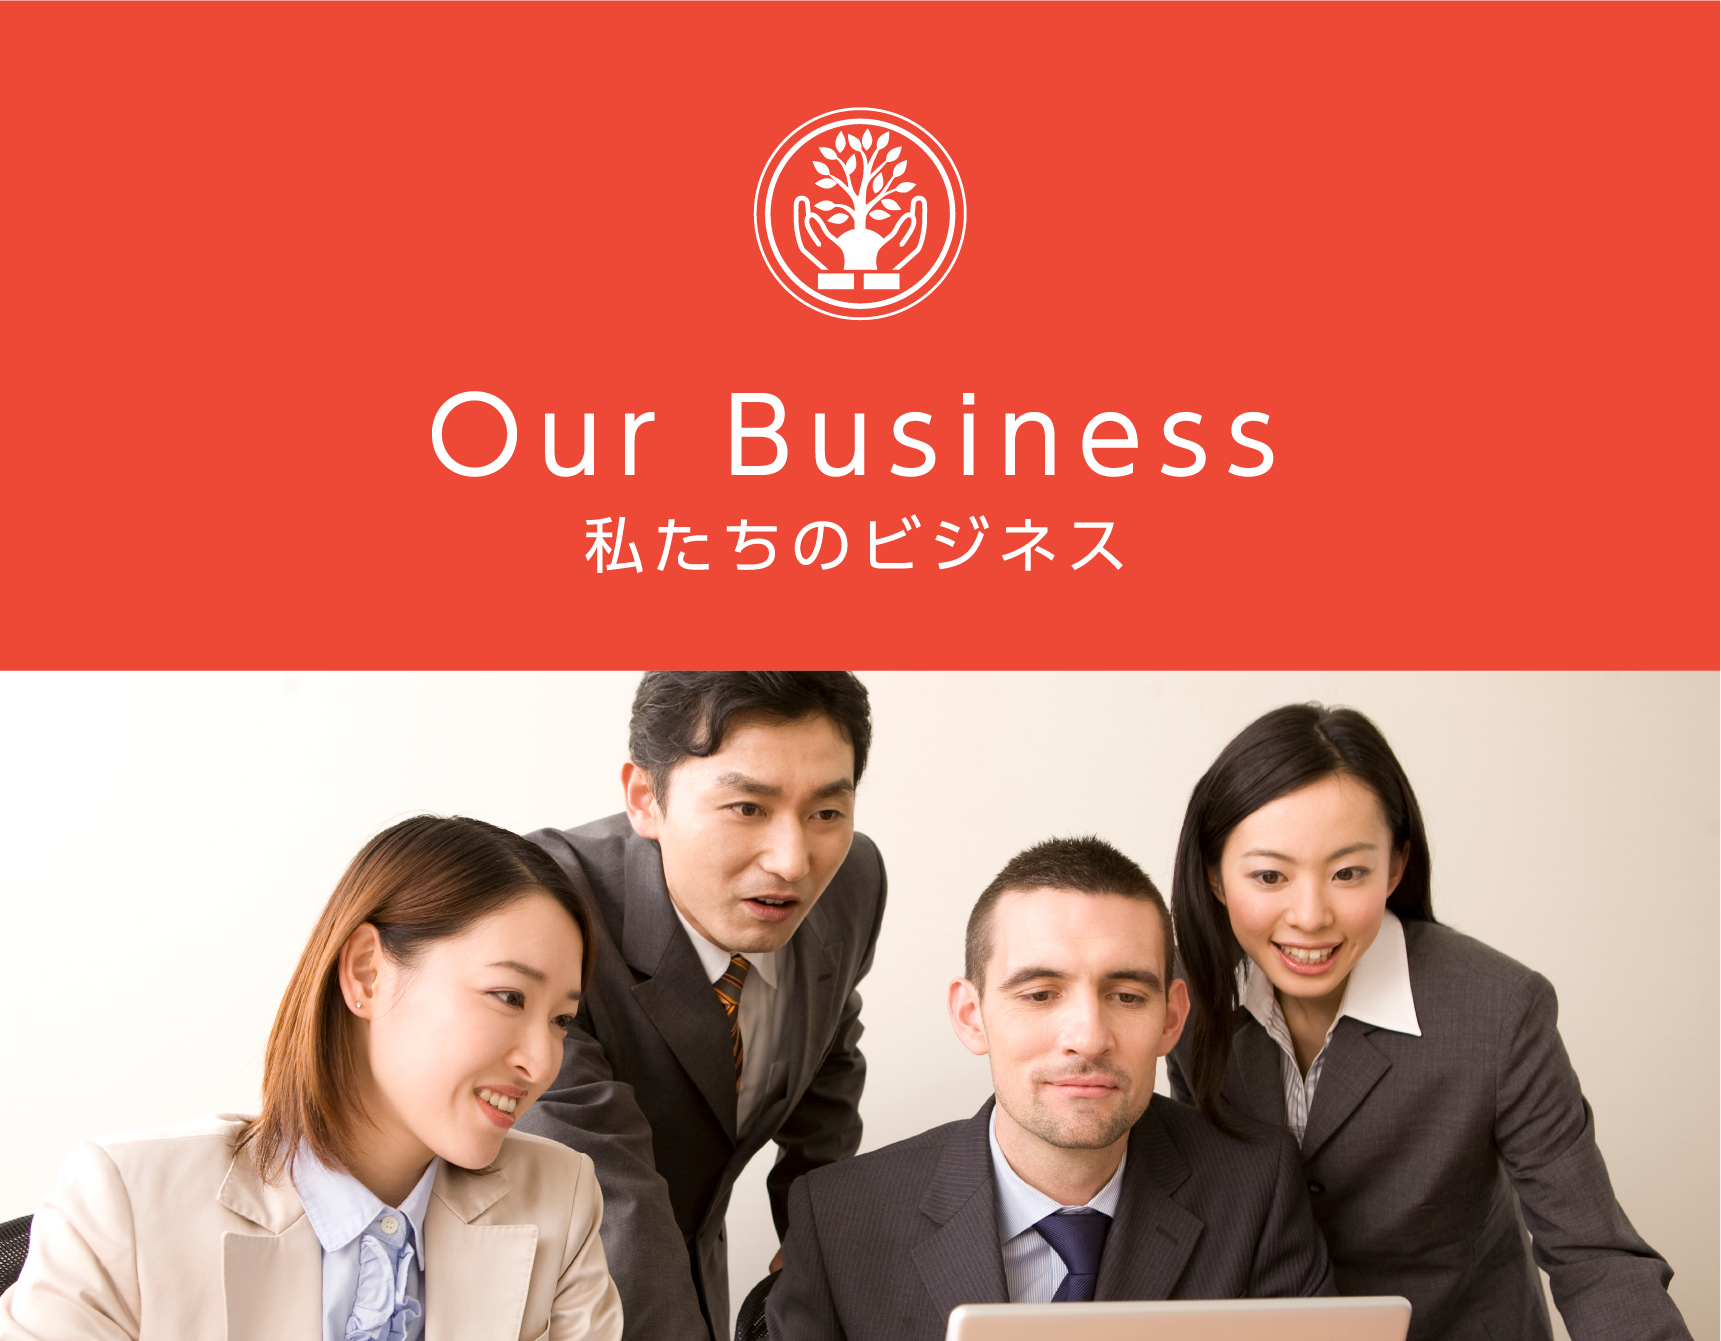 Our Business 私たちのビジネス